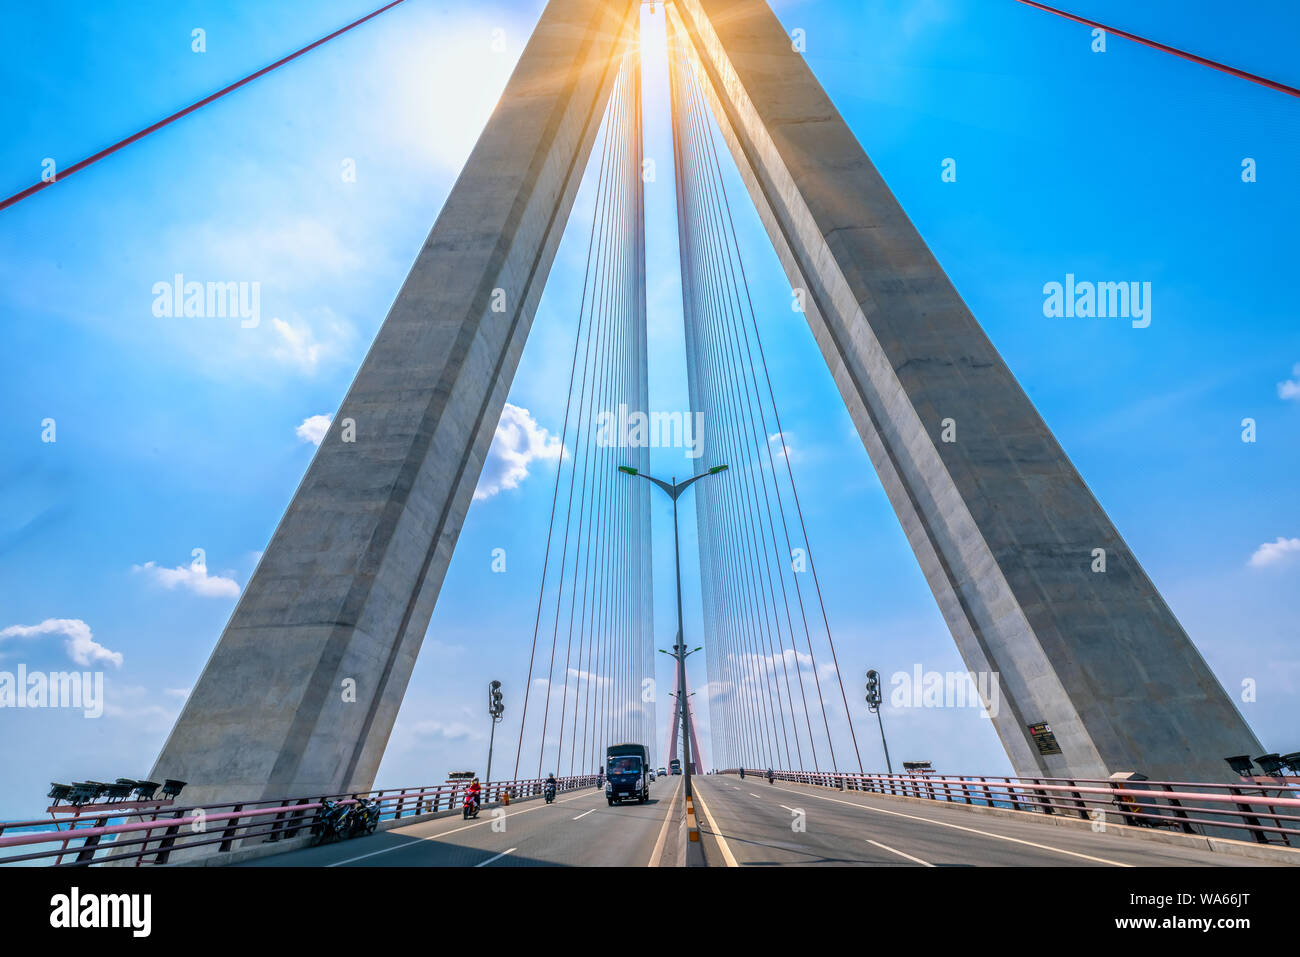 Can Tho bridge cable traffic stays on the Mekong River in the morning connecting traffic between Vinh Long and Can Tho, Vietnam Stock Photo